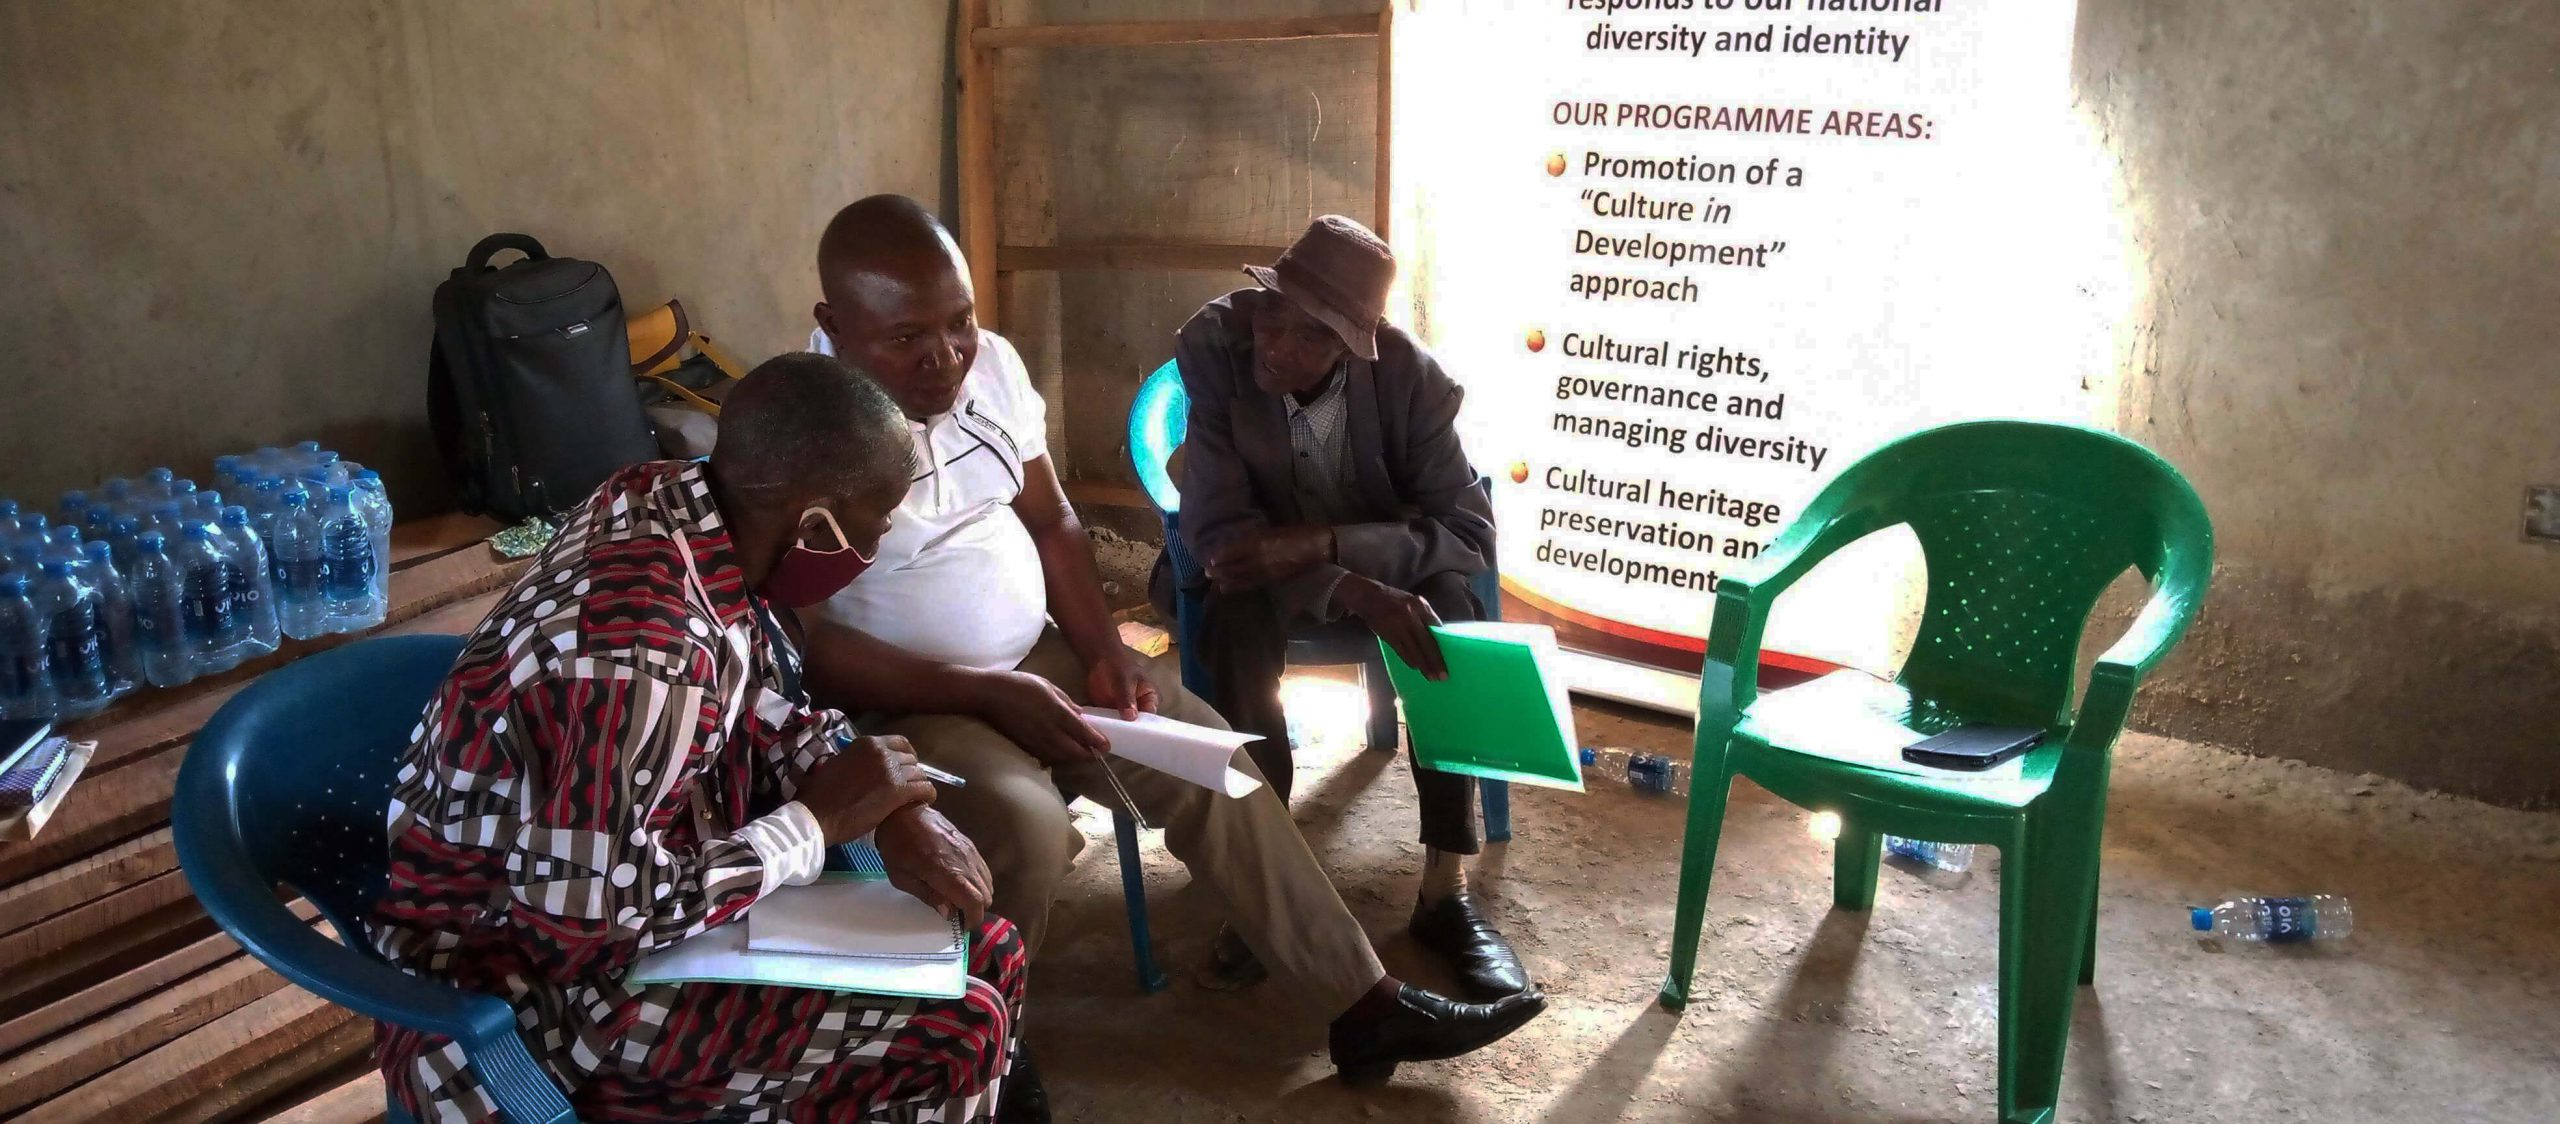 Uganda project: Community dialogue participants in the process of identitying potential heritage sites under threat from climate change